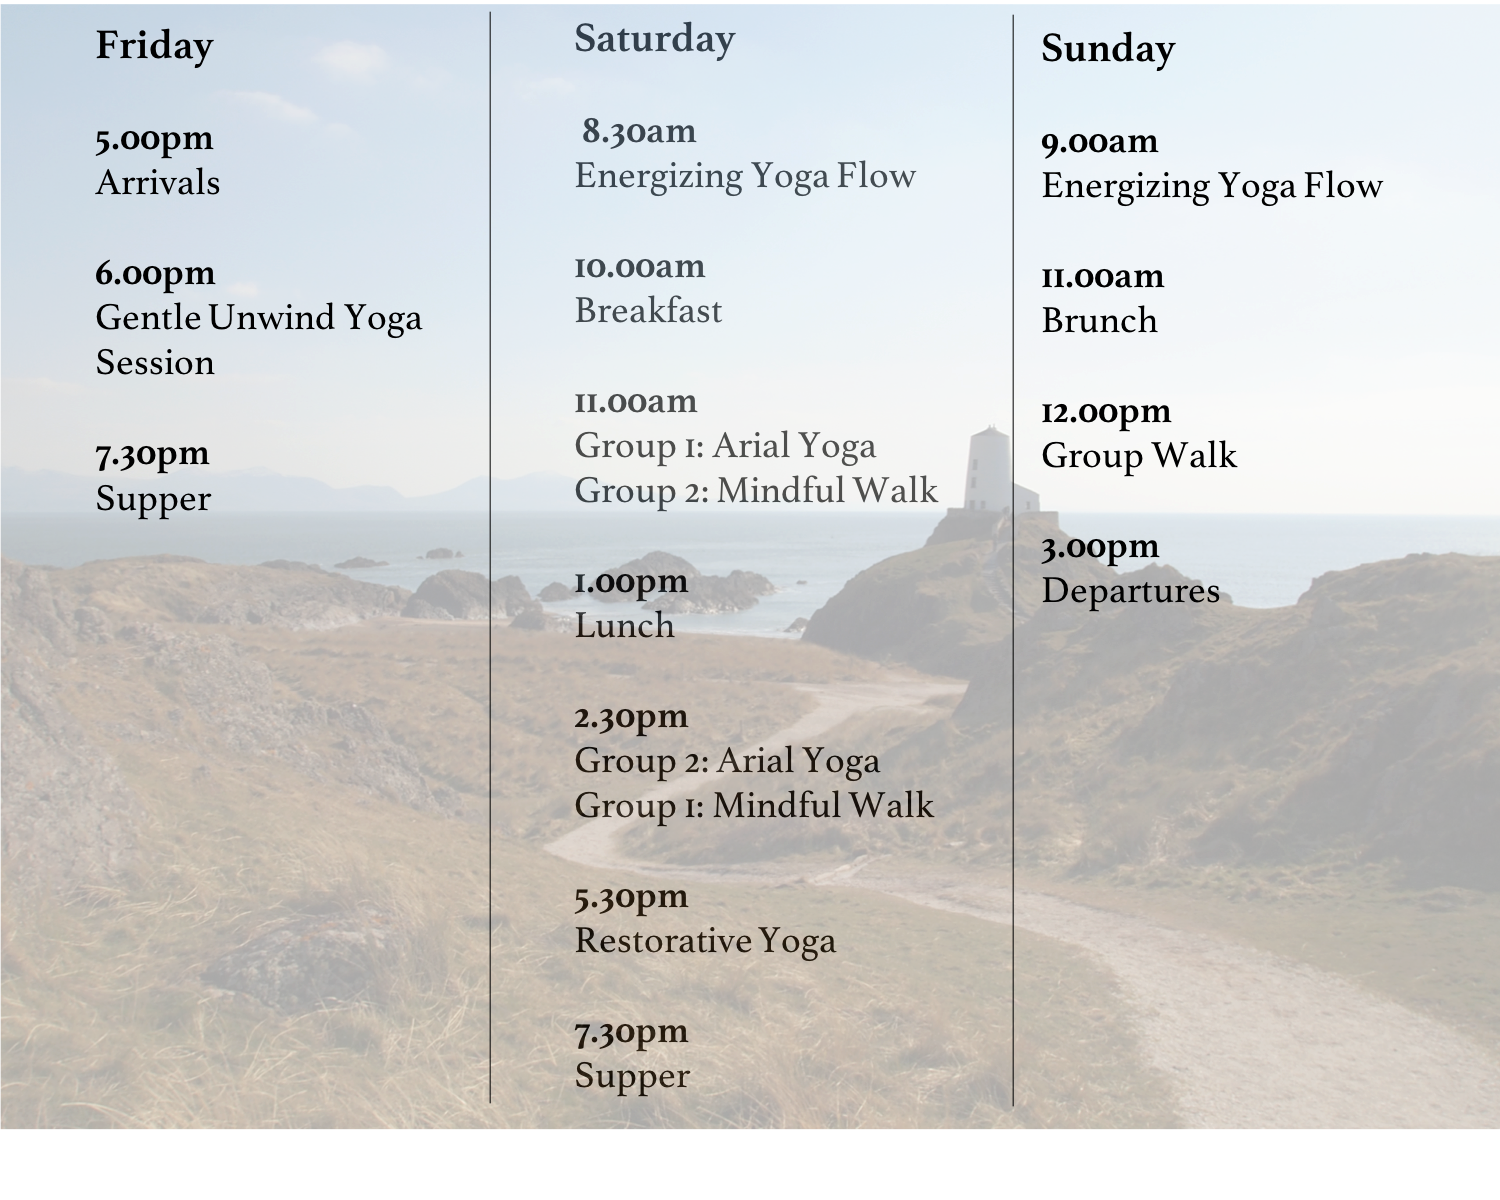 *this itinerary is subject to time changes and participation in activities is always optional!